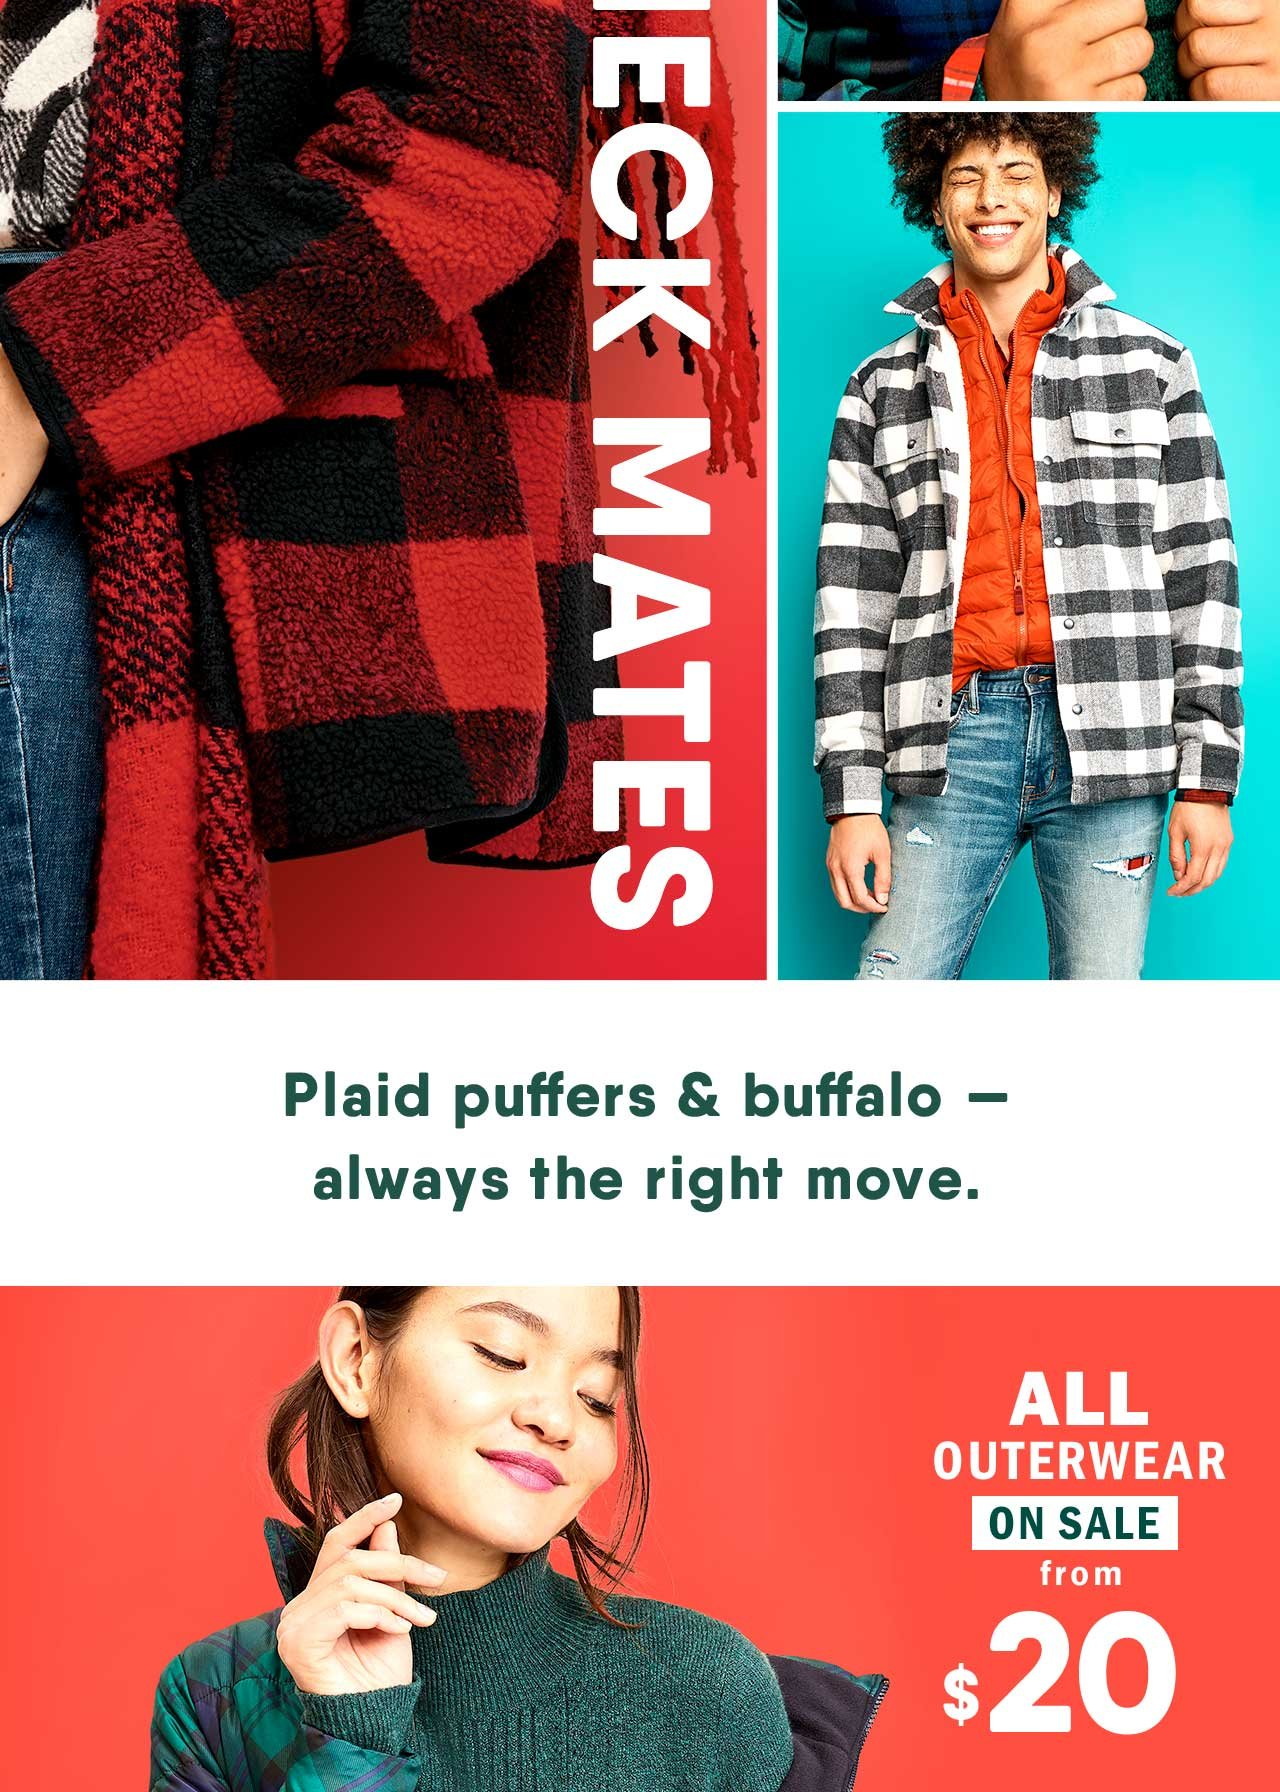 Plaid puffers & buffalo - always the right move.